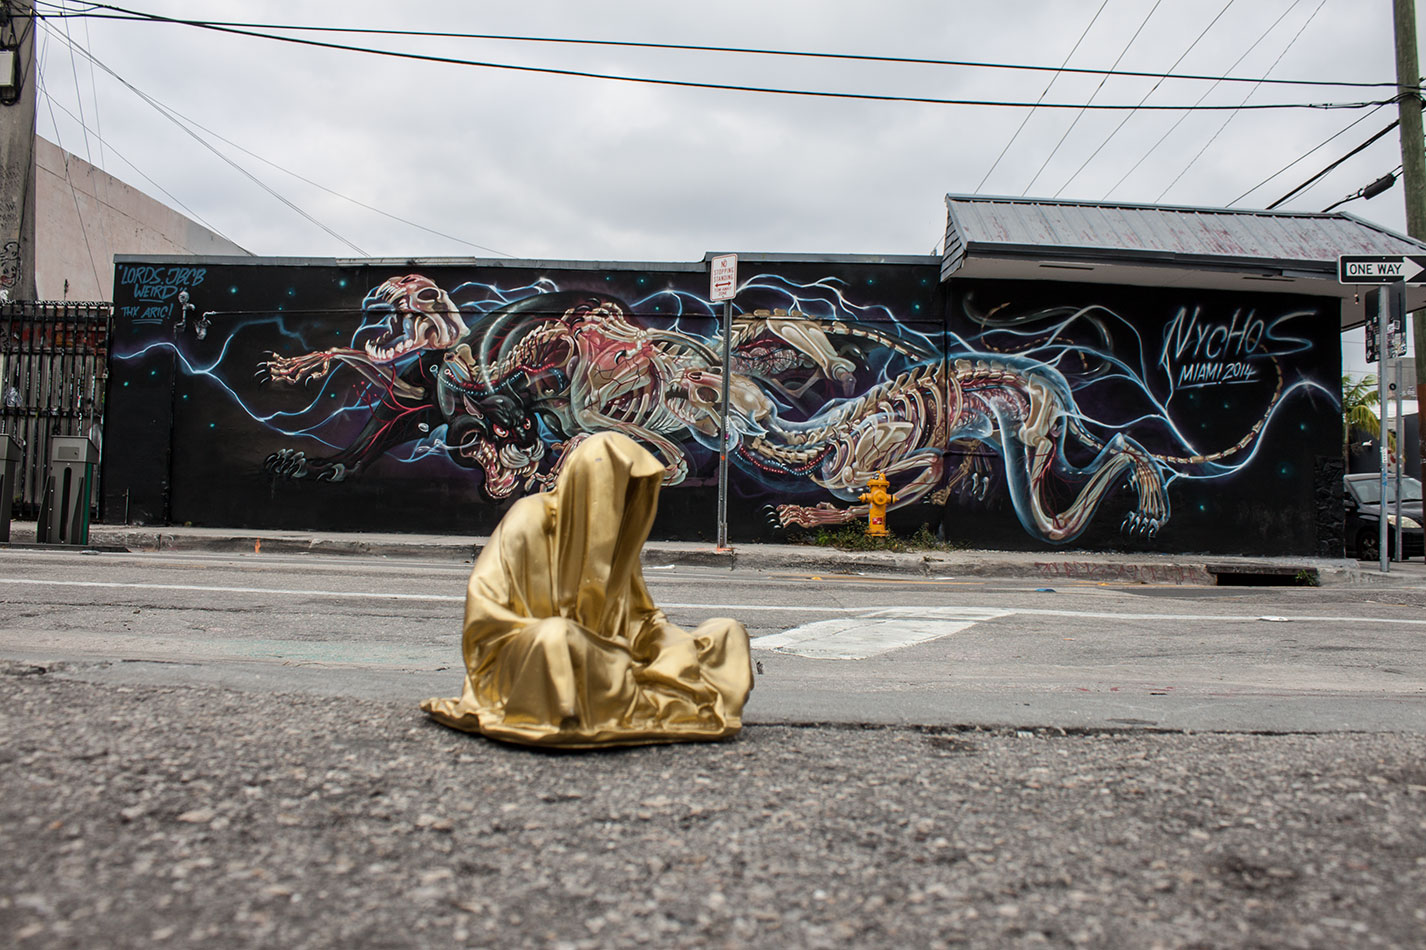 public-art-basel-miami-beach-fair-usa-florida-bass-museum-guardians-of-time-manfred-kili-kielnhofer-contemporary-fine-art-modern-arts-design-antiques-sculpture-6647